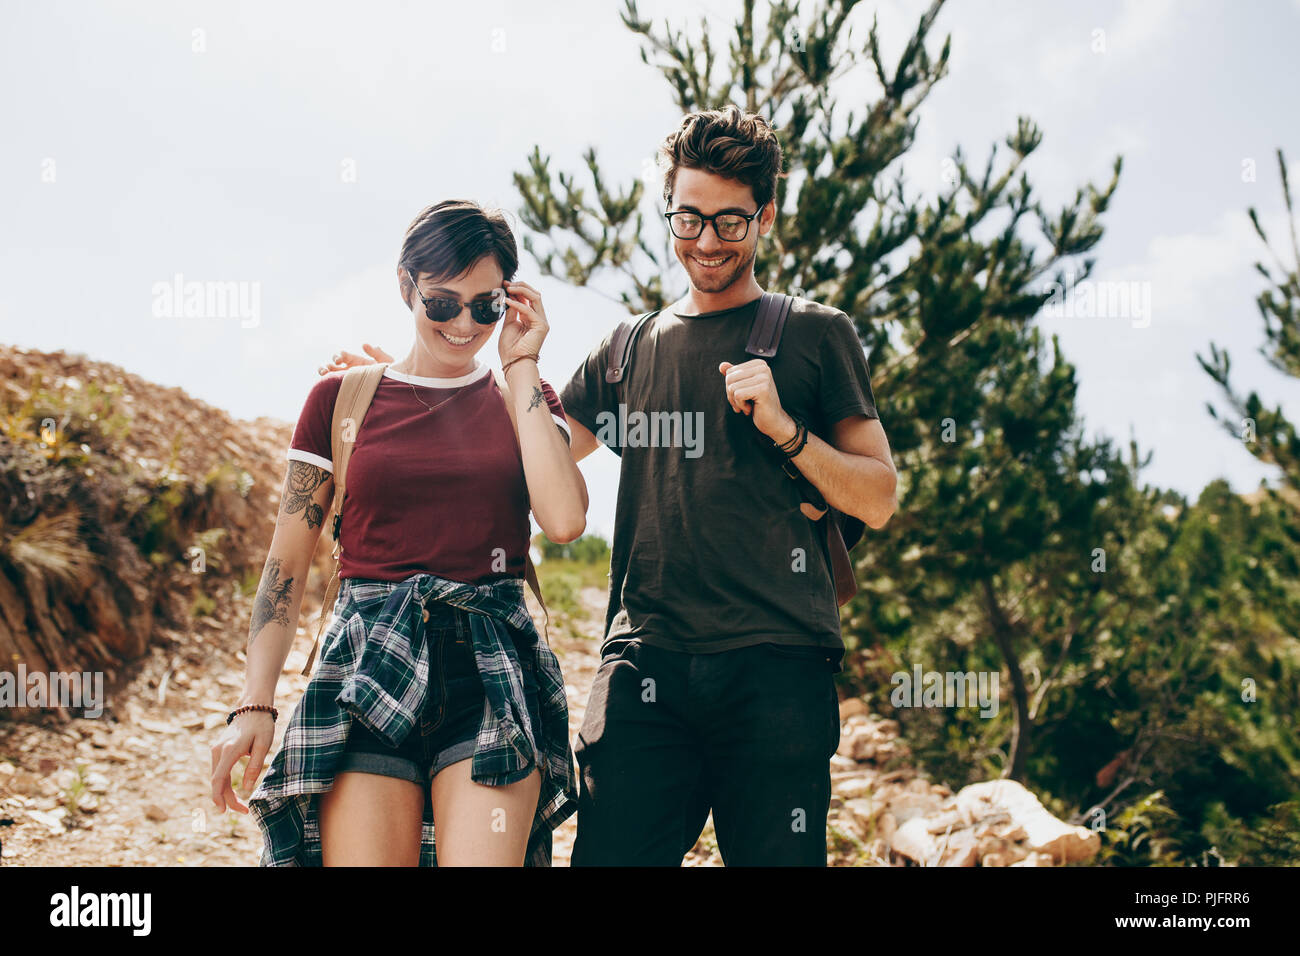 Couple hiking in a countryside location. Man and woman trekking through a forest wearing backpacks. - Stock Image